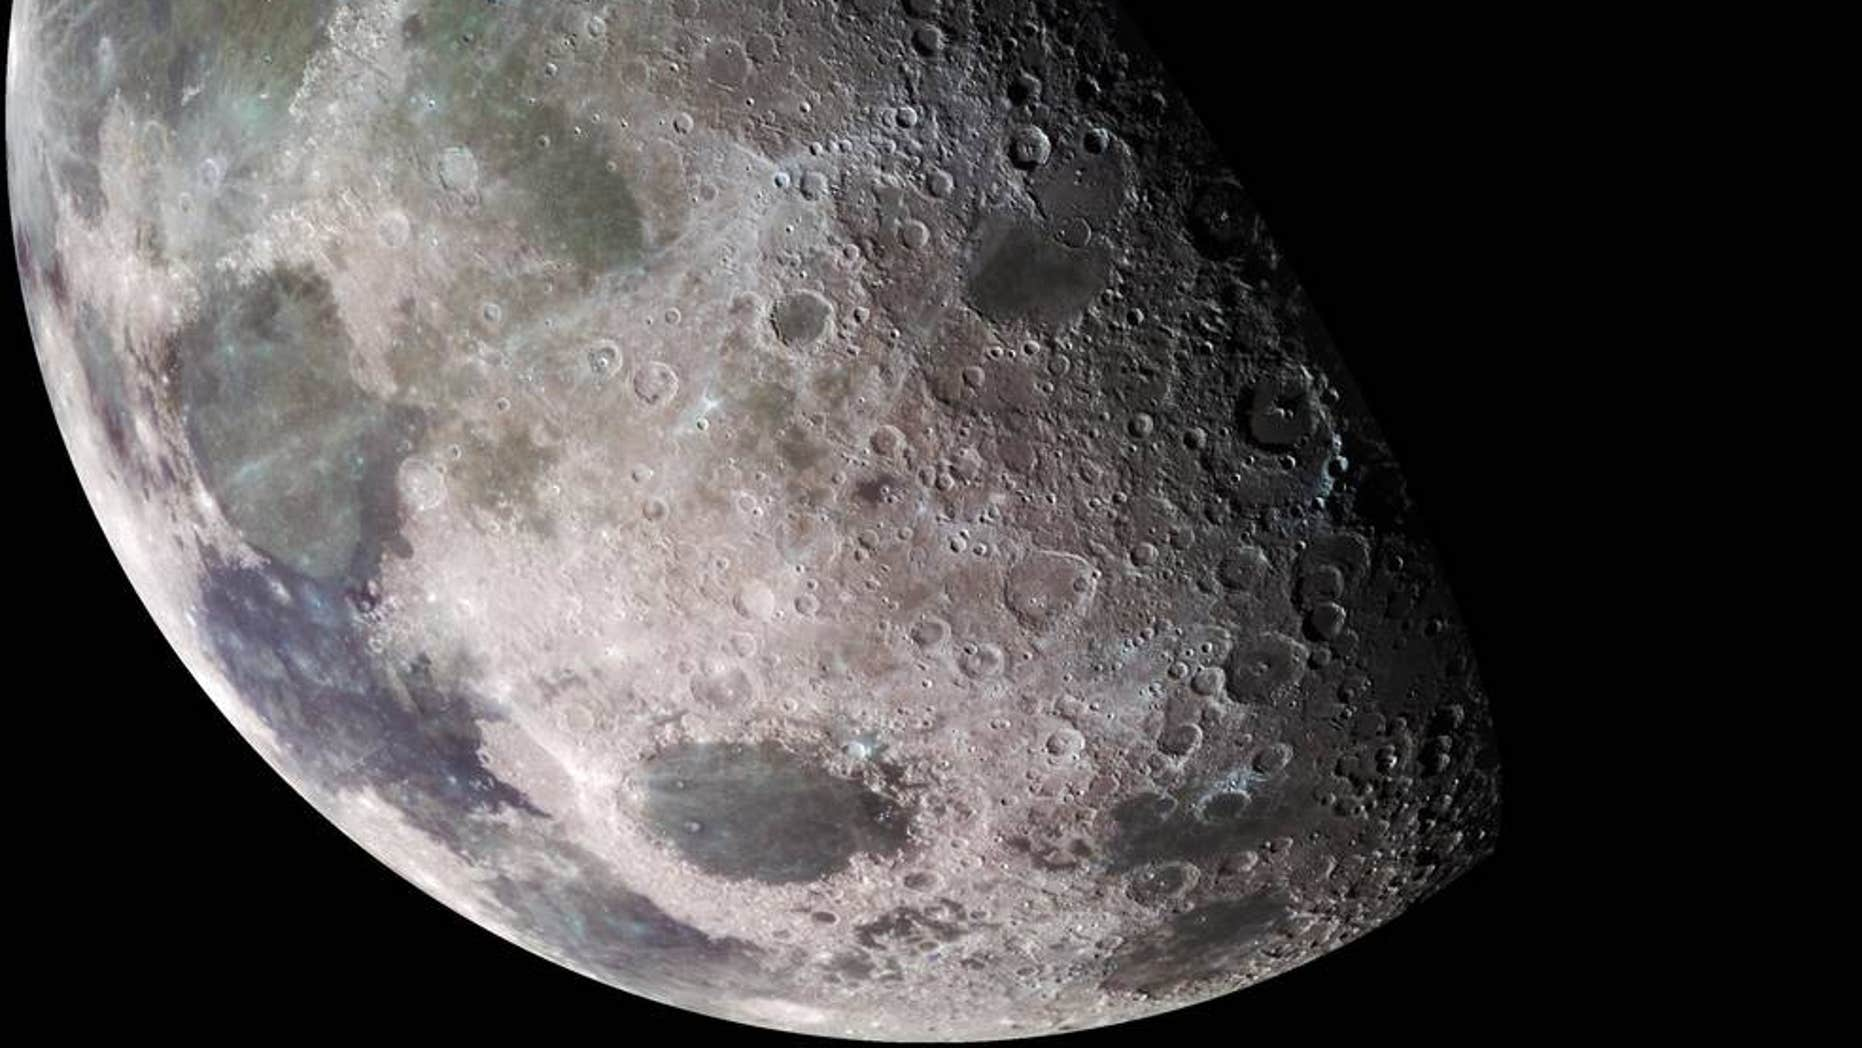 File photo - the Moon photographed in shadow.